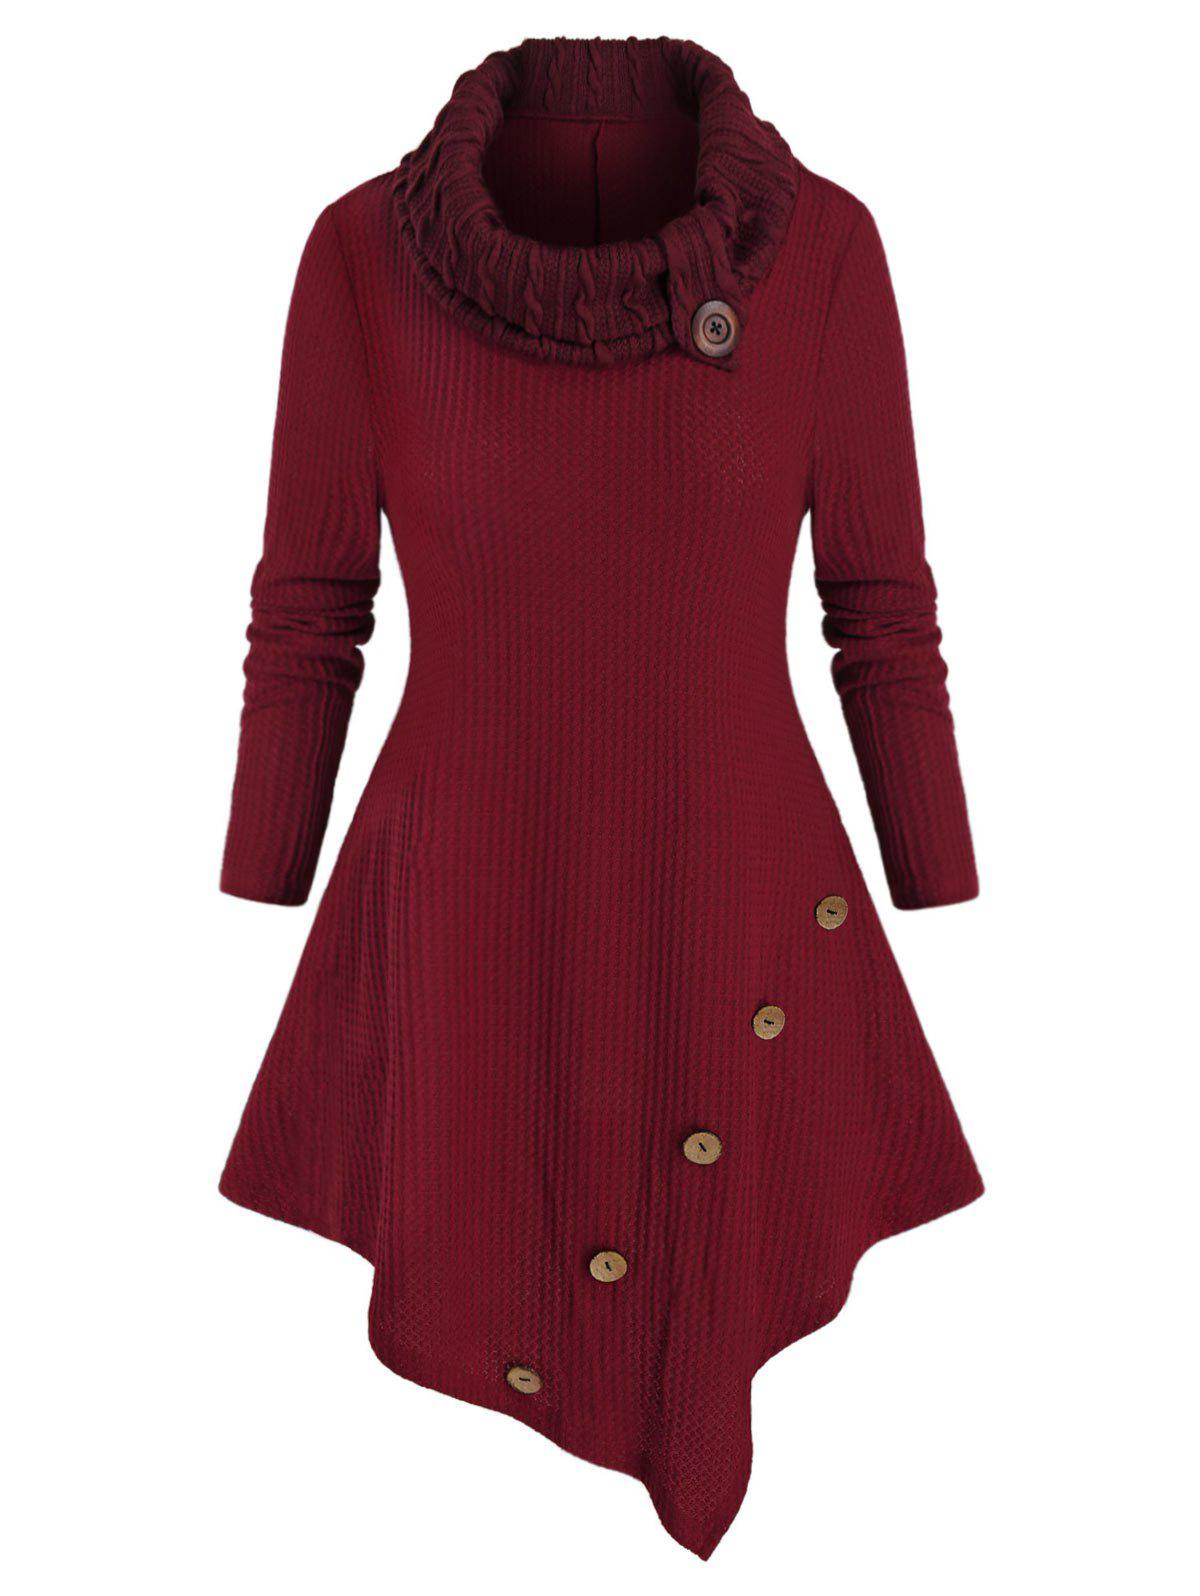 Plus Size Uneven Hem Turtleneck Knit Sweater - RED WINE 3X